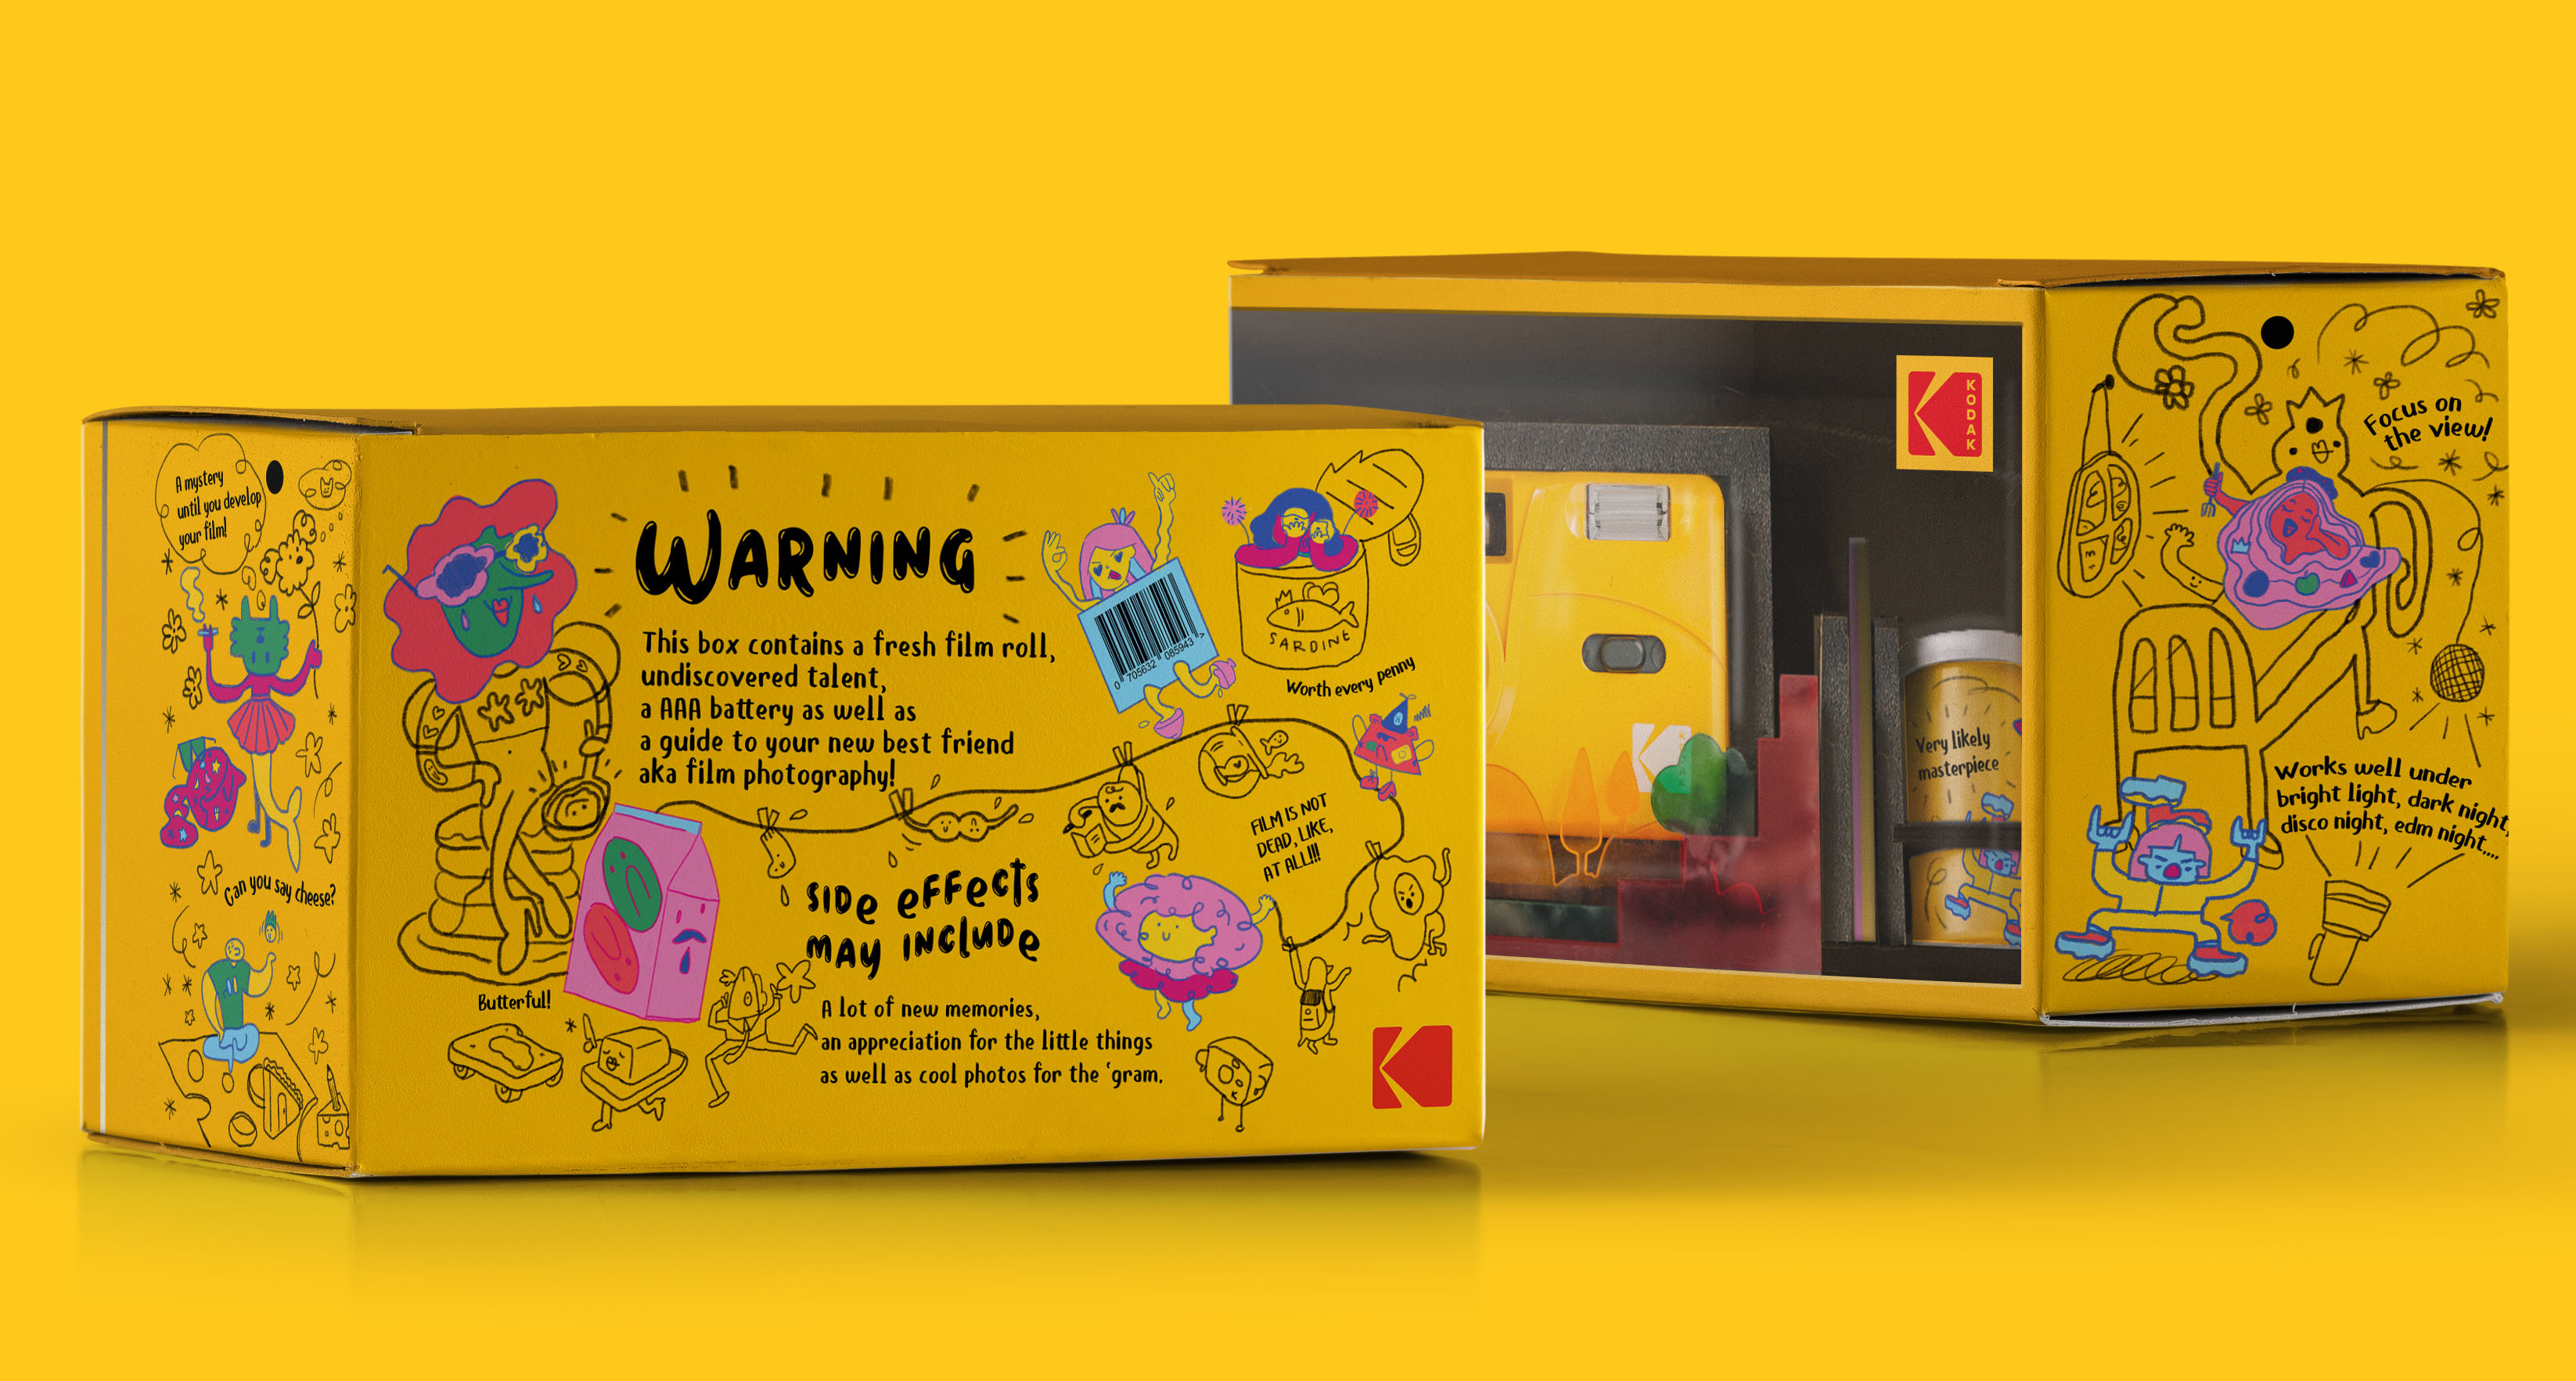 Student Concept Packaging Design for Kodak M35 with Unpredictable Characters